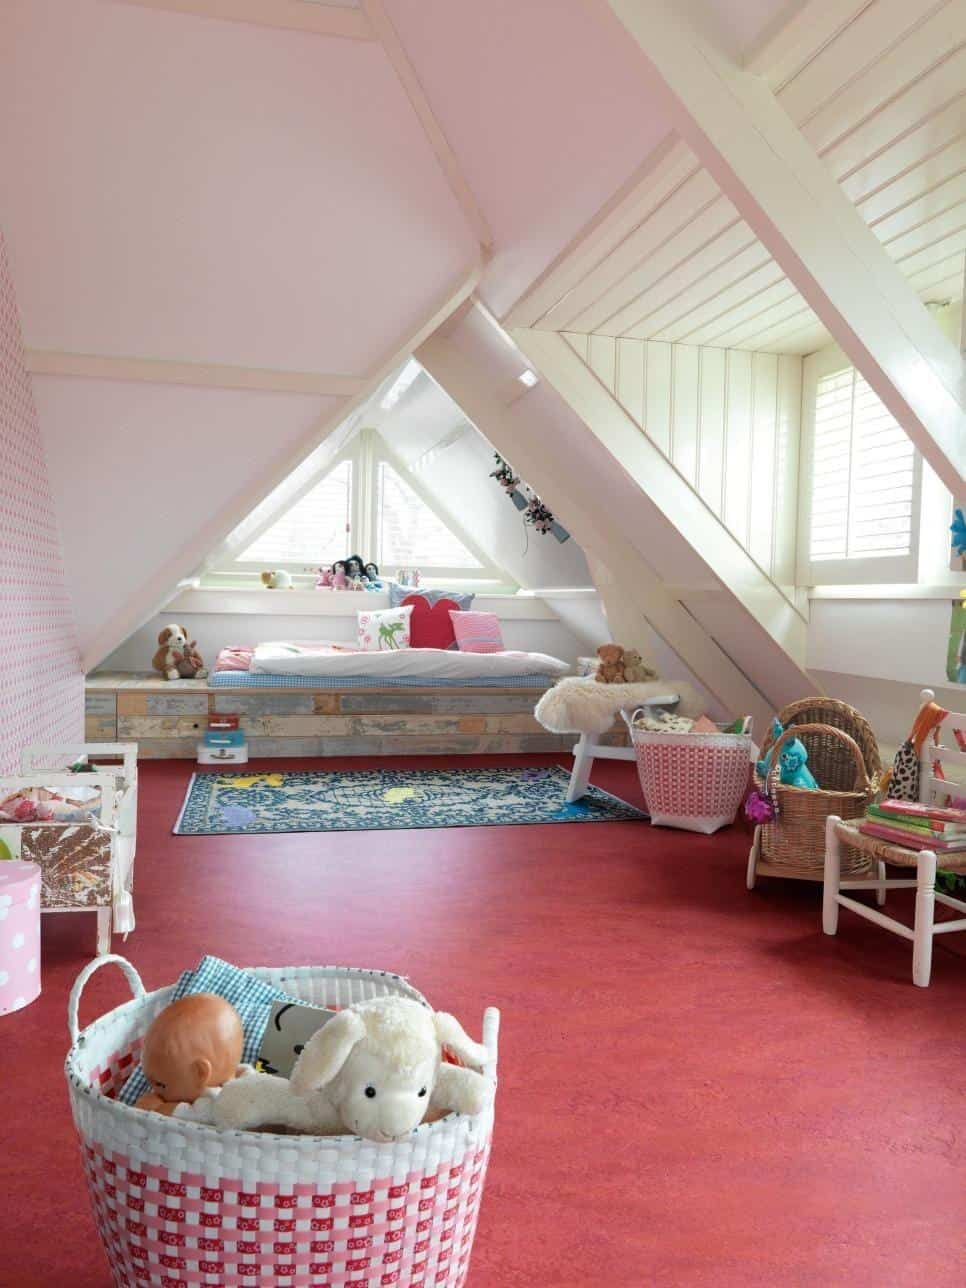 Linoleum floors in children's bedrooms